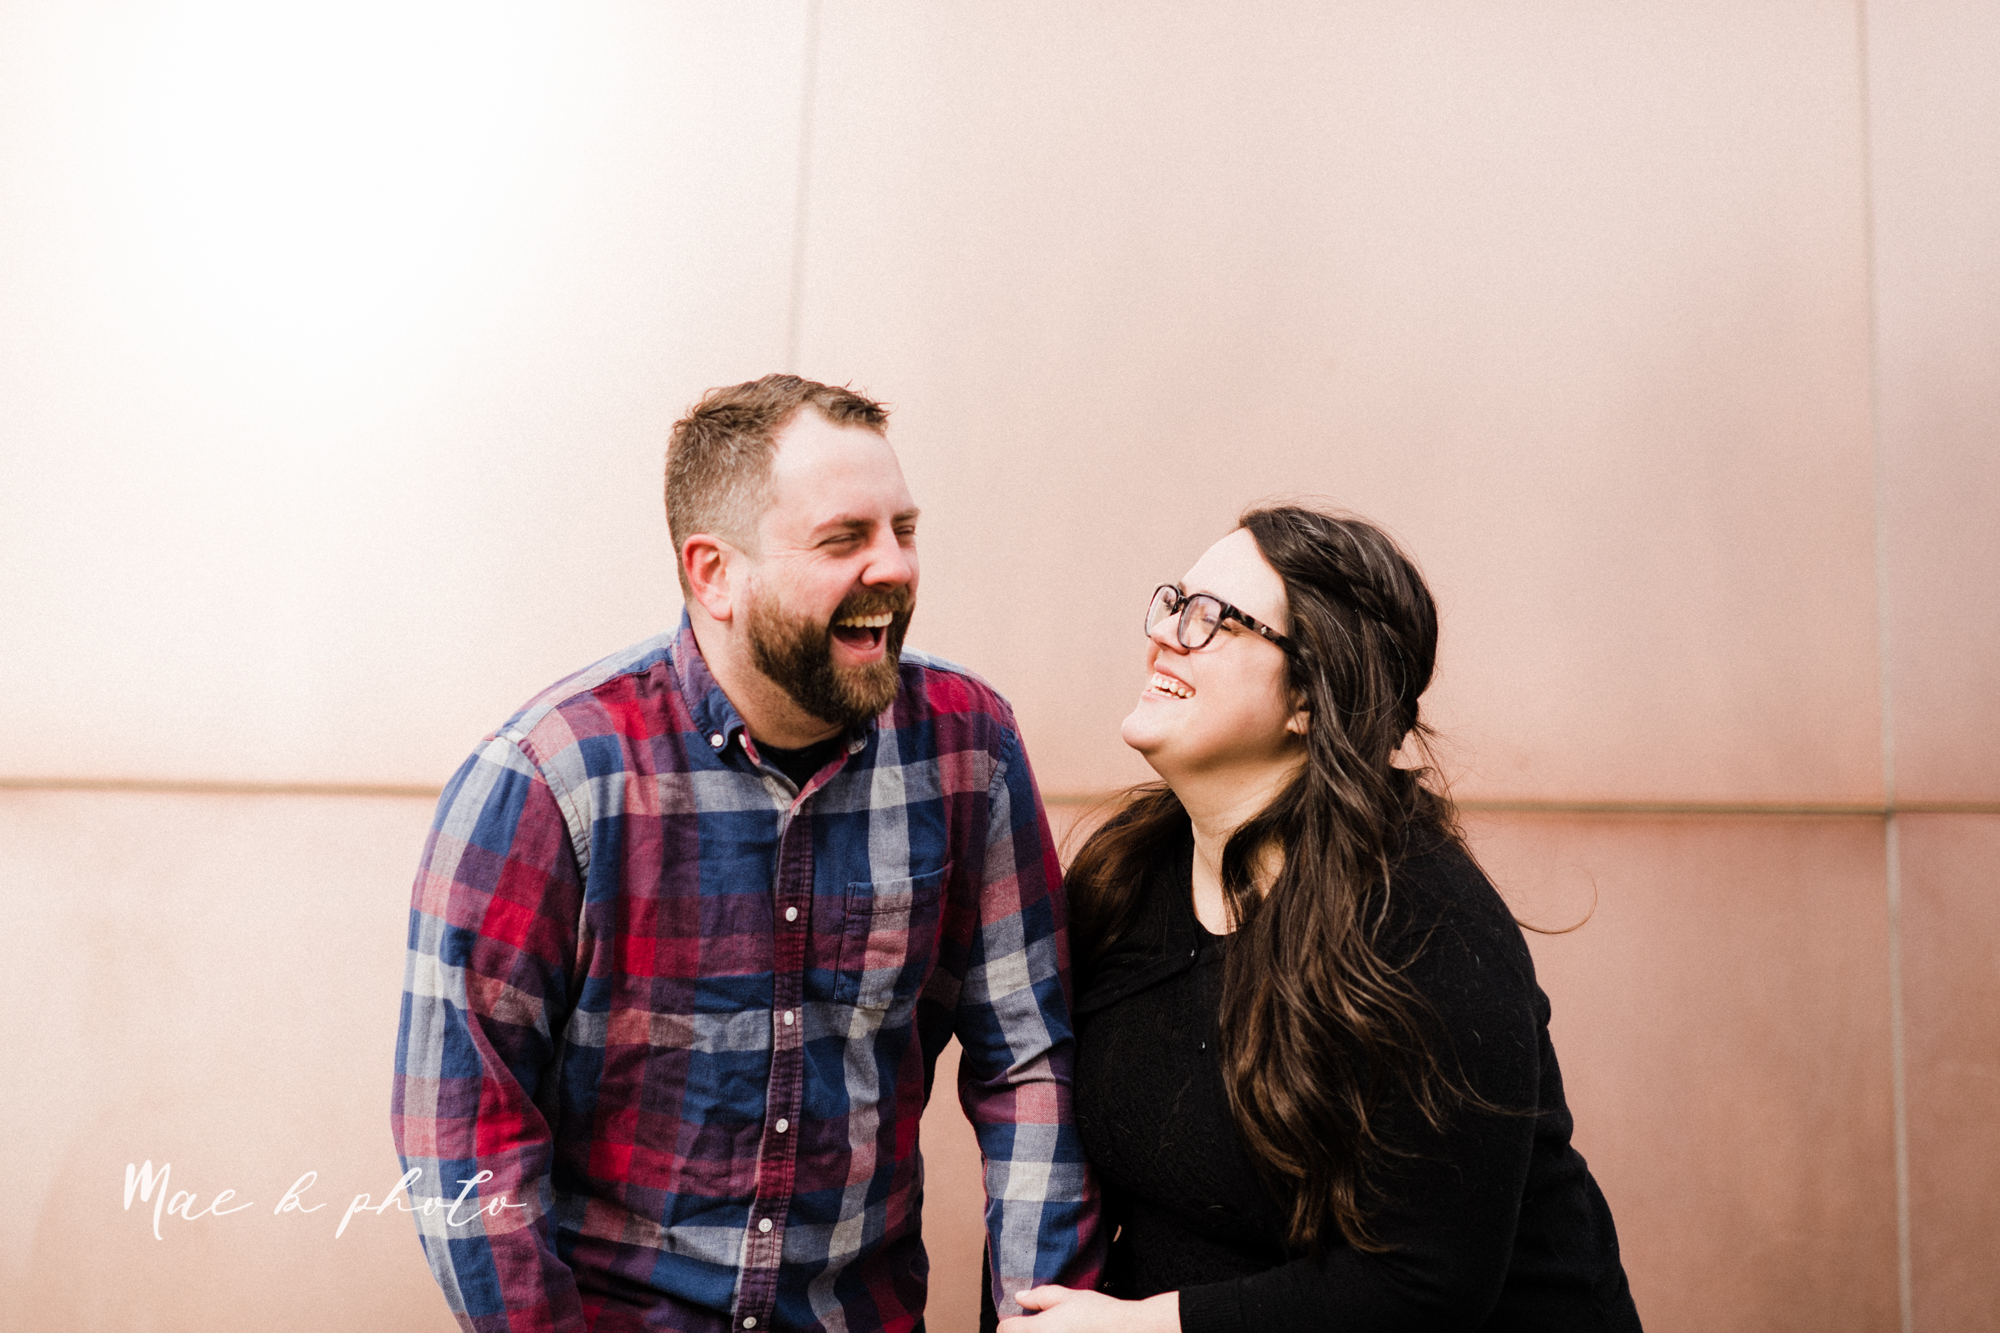 brad and kaitlin's winter museum engagement session at the cleveland museum of art and the cleveland natural history museum and the botanical gardens in cleveland ohio photographed by youngstown wedding photographer mae b photo-48.jpg